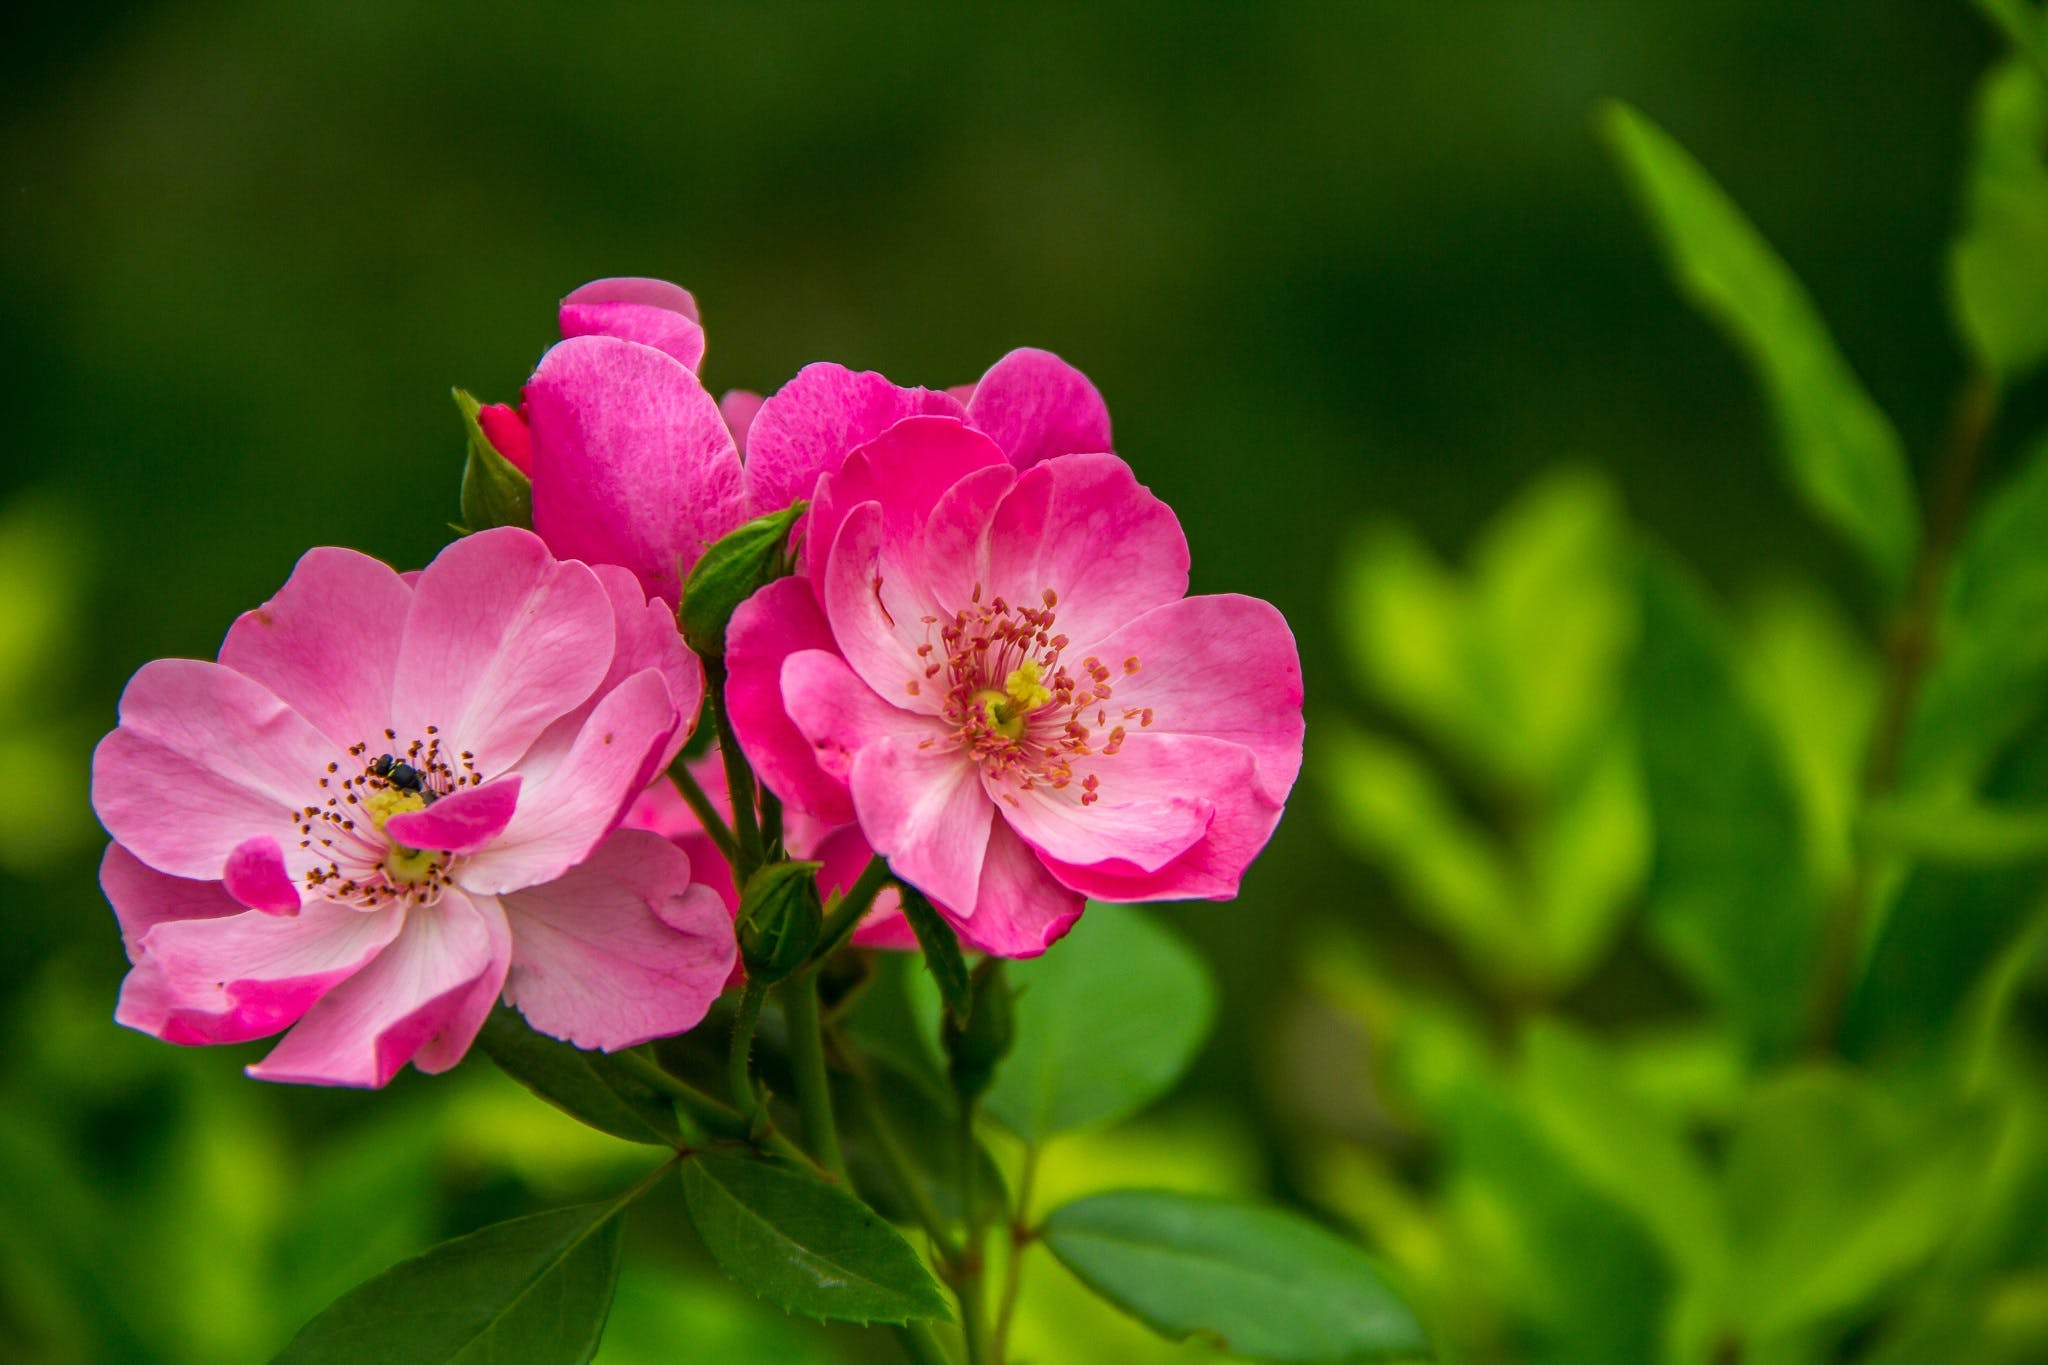 Close Photography of 3 Pink and White Flower